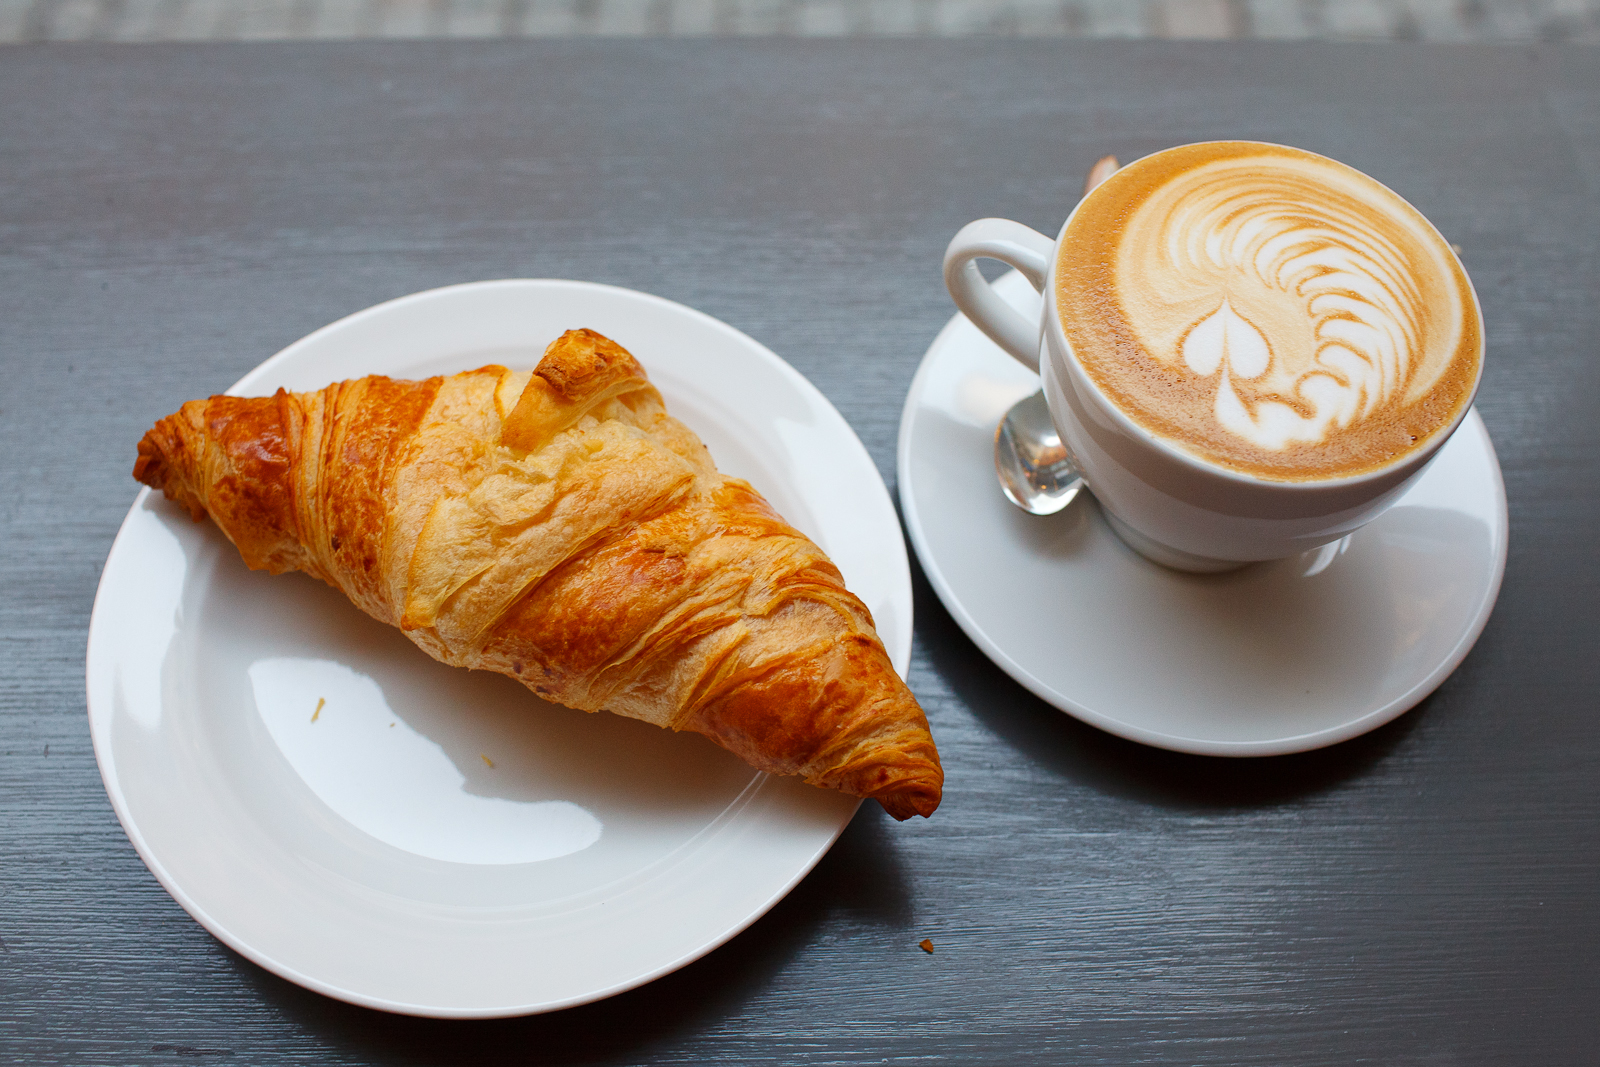 Croissant and a cappuccino